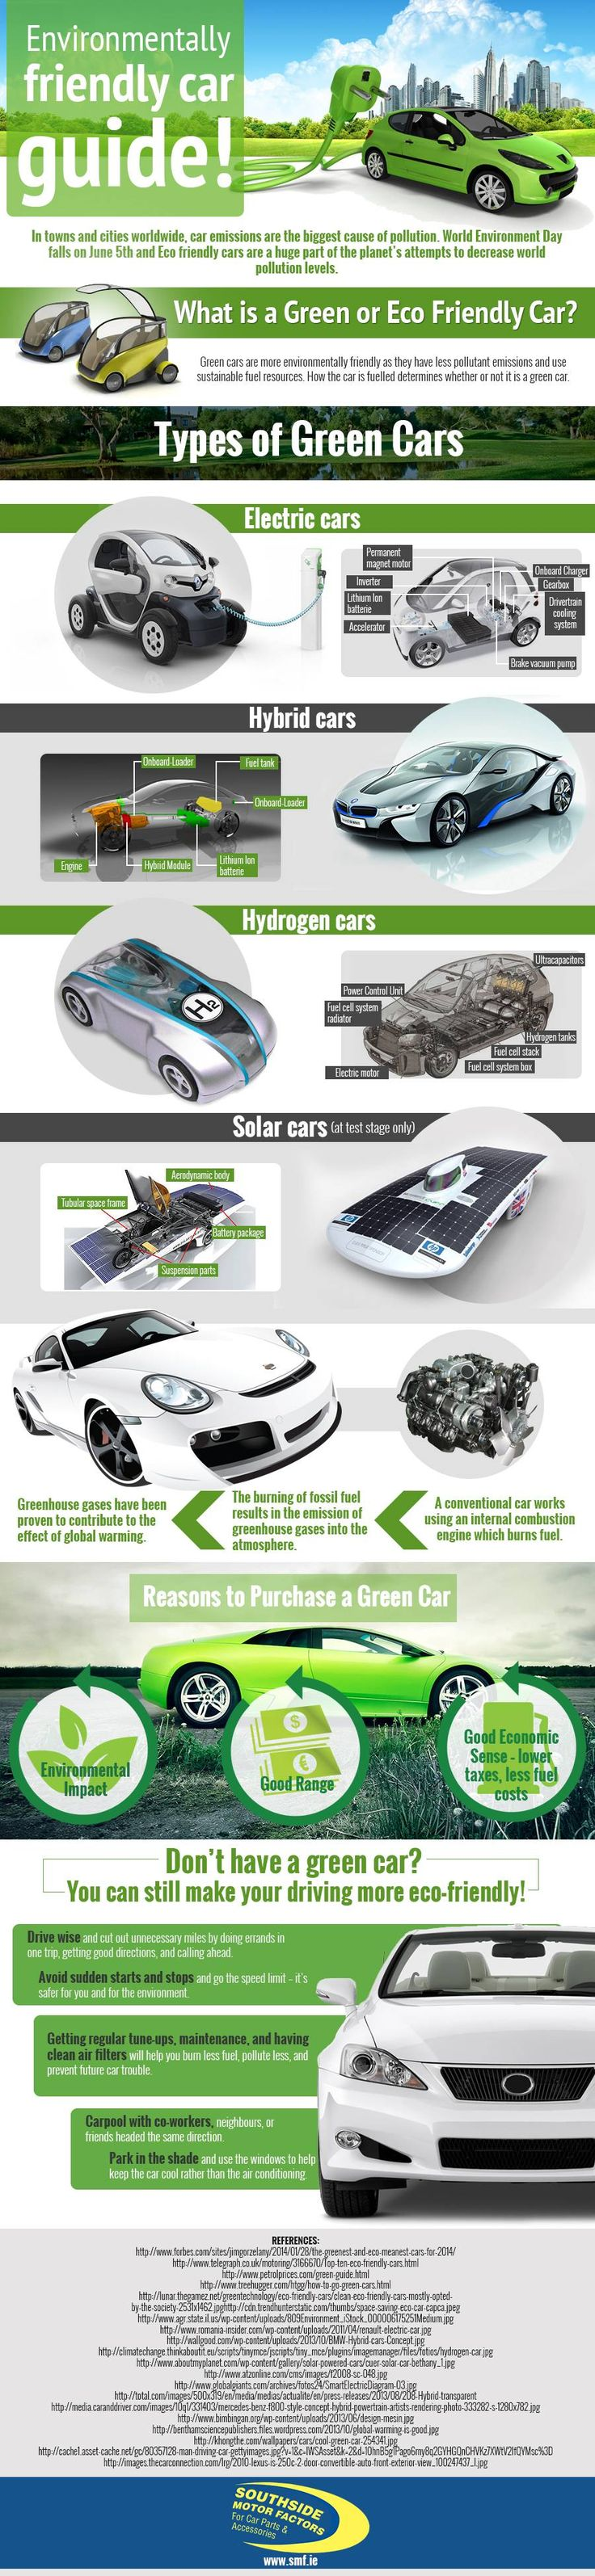 Environmentally Friendly Car Guide!   #Cars #Environment #infographic